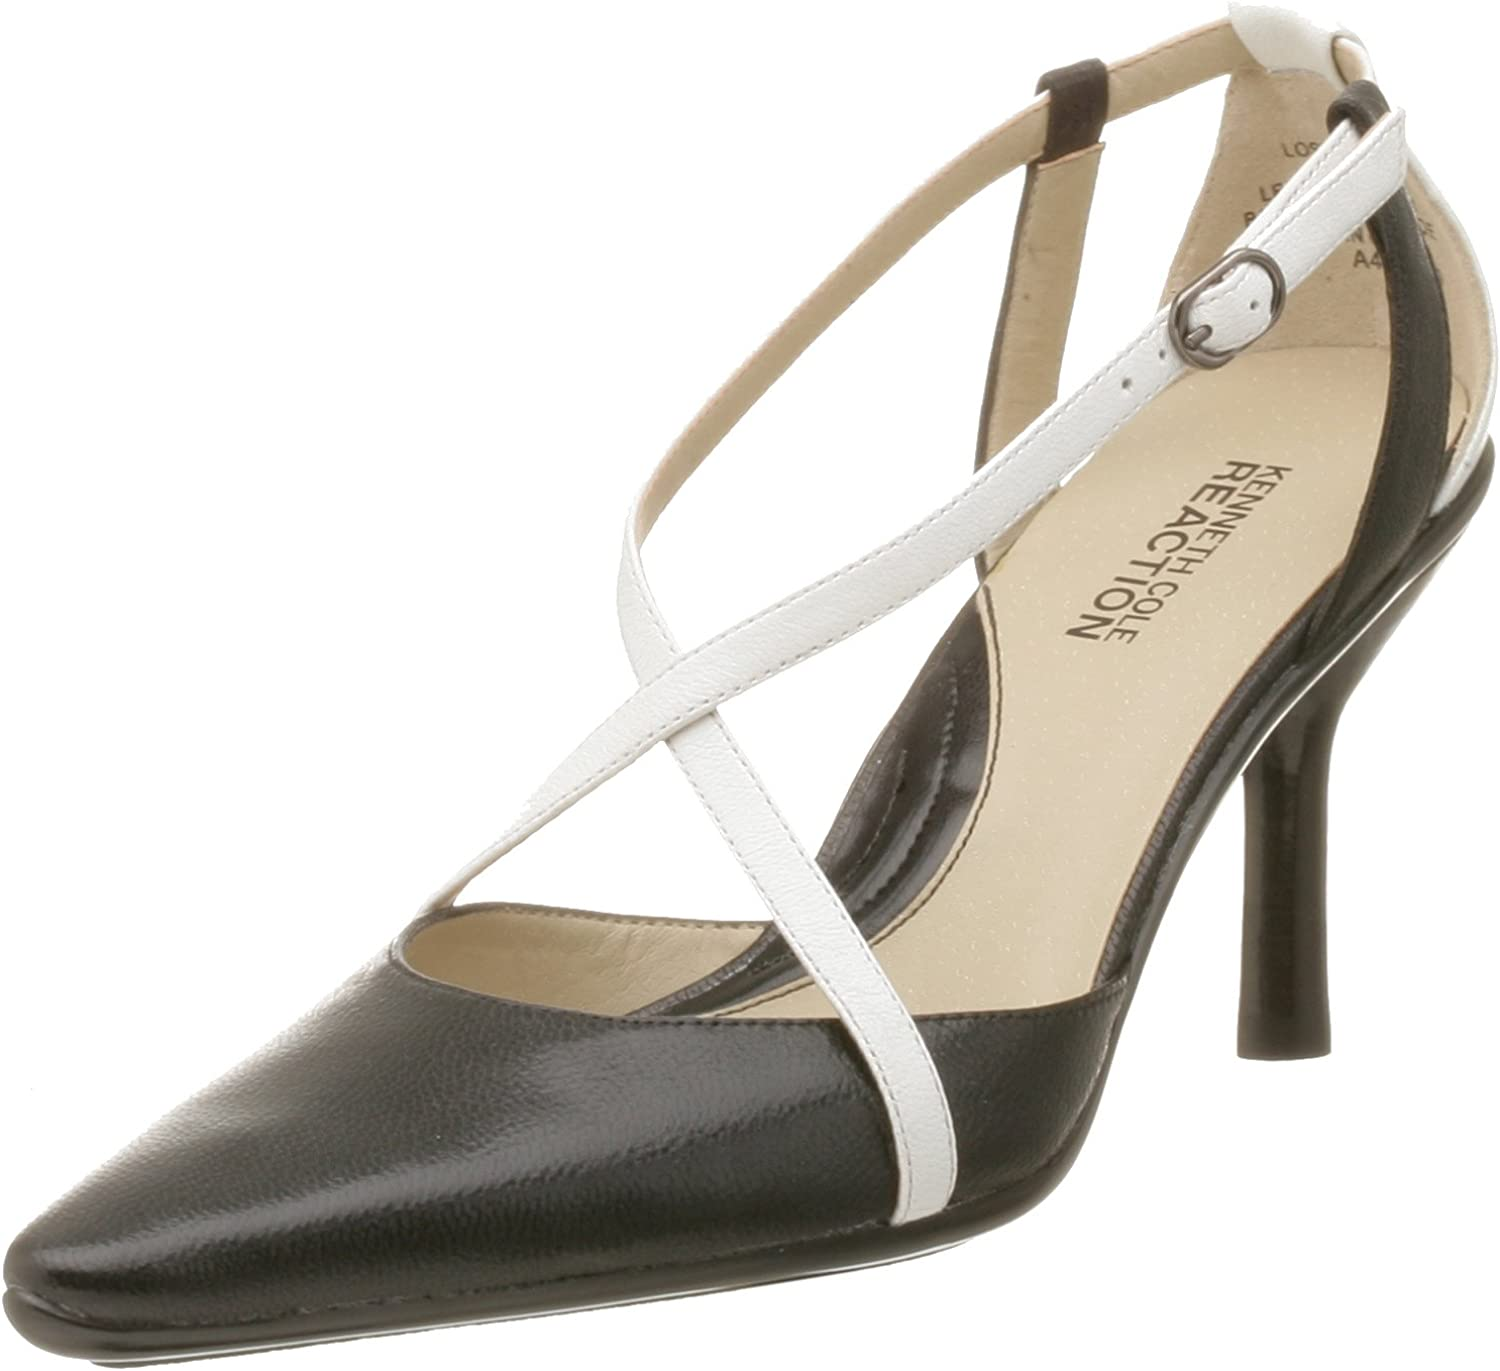 Kenneth Cole REACTION Women's Popular standard Lost Challenge the lowest price Cos Heel Pointed Pum High Toe